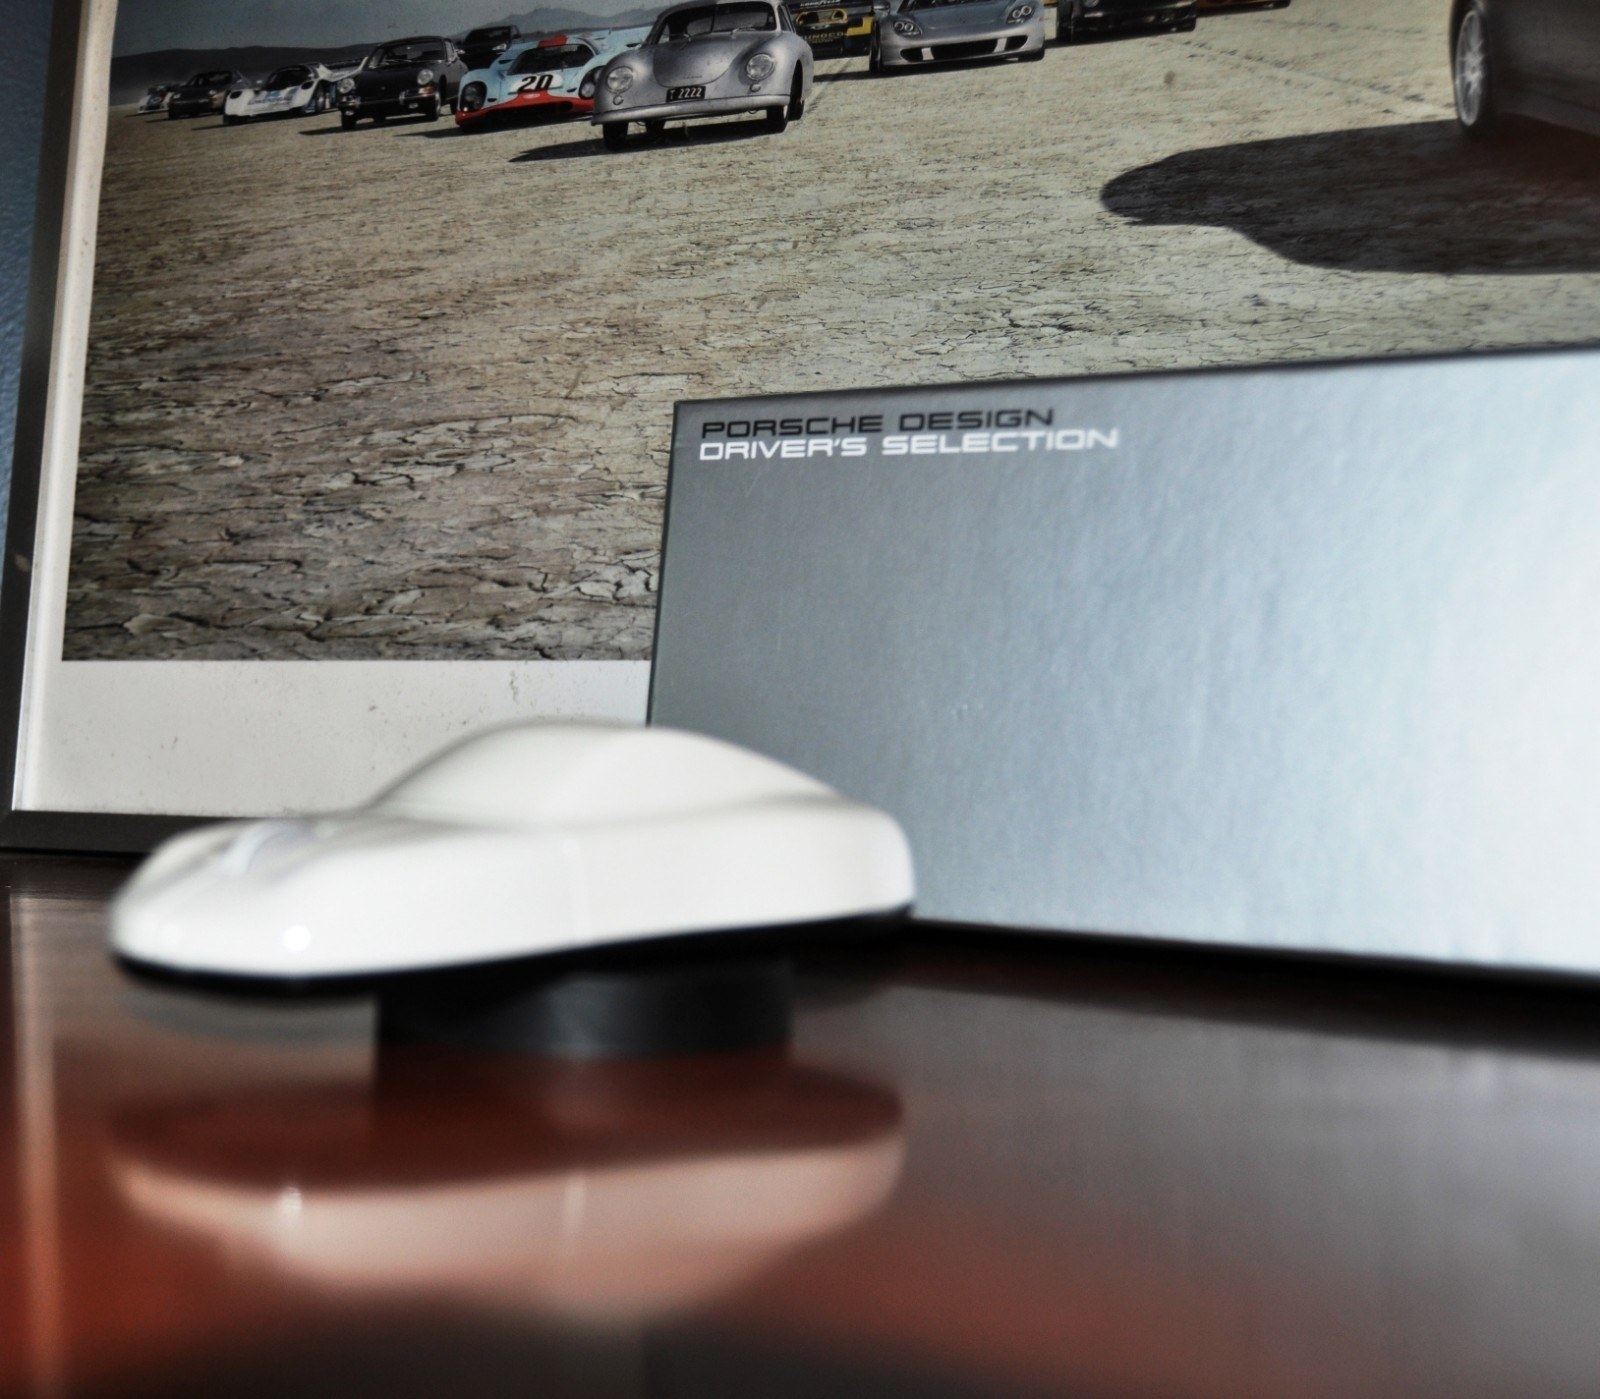 CarRevsDaily - Porsche Design Computer Mouse - Gadget Review 27